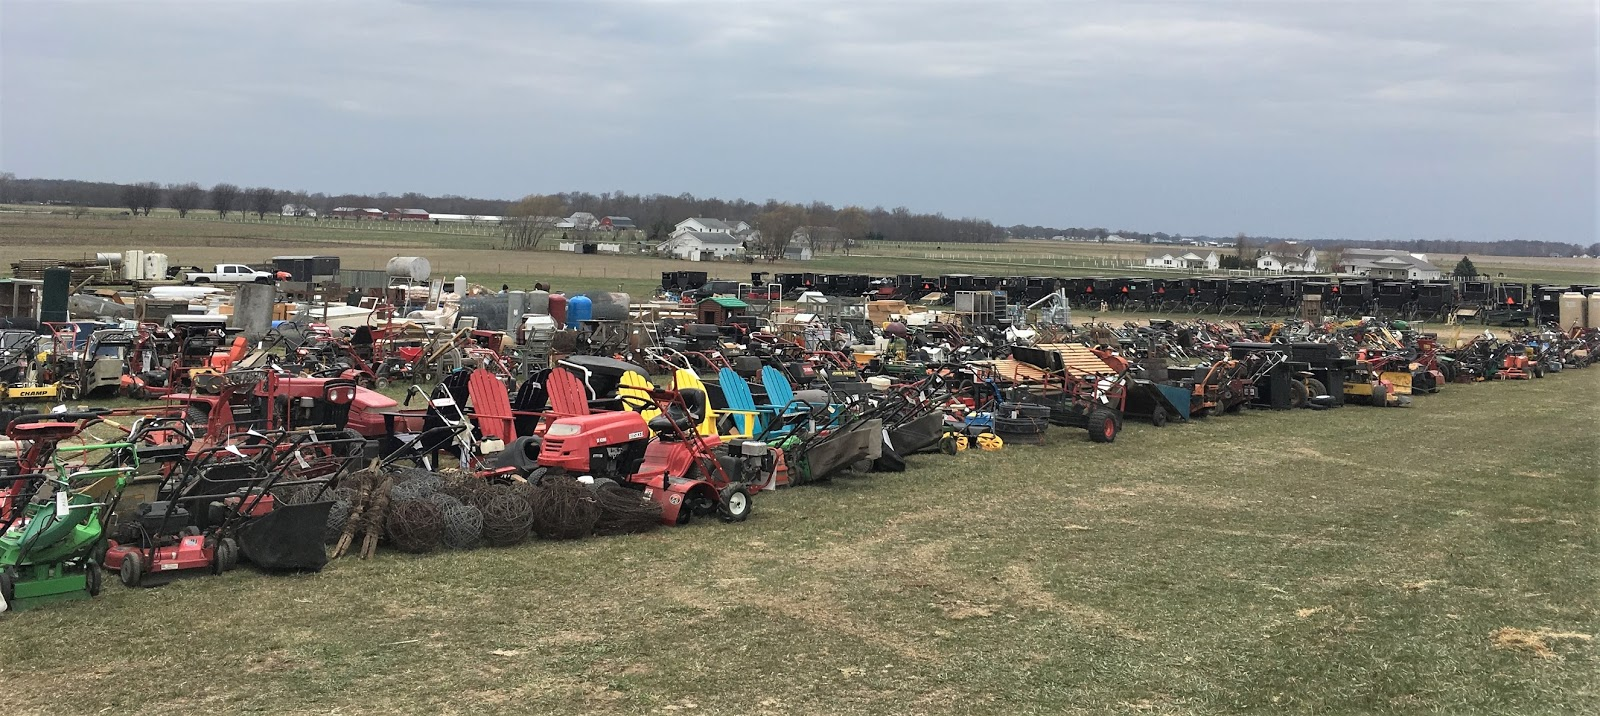 My Amish Indiana: Yoder Consignment Auction